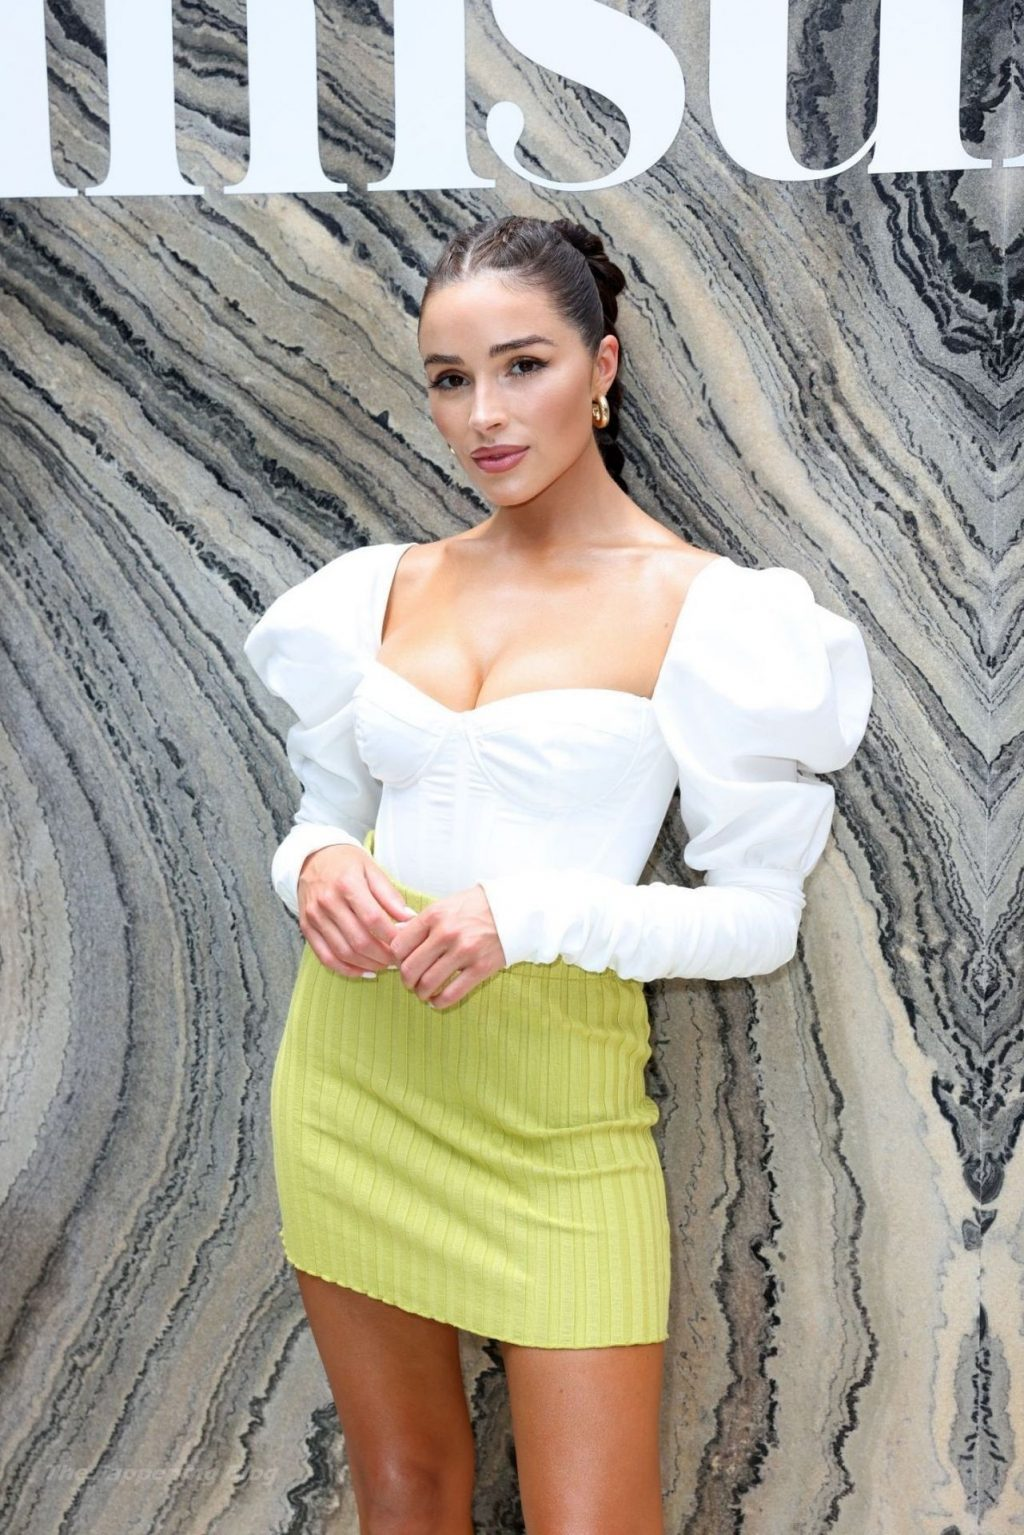 Olivia Culpo Flaunts Nice Cleavage the Sports Illustrated Swimsuit Event (21 Photos)